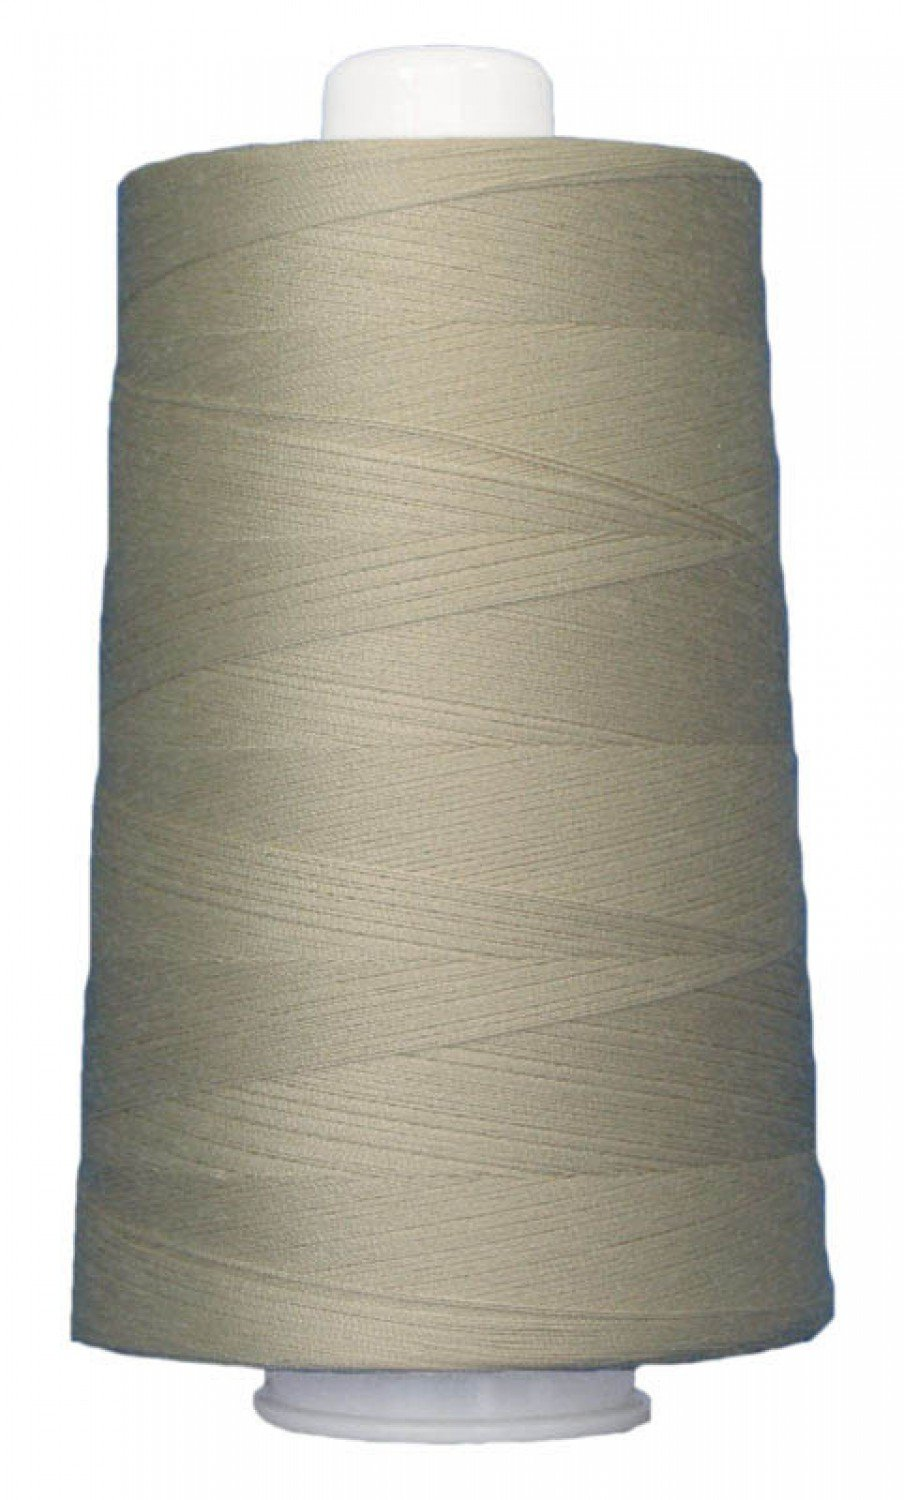 OMNI Polyester Thread 40 wt 6000 yds 3006 Light Tan by Superior